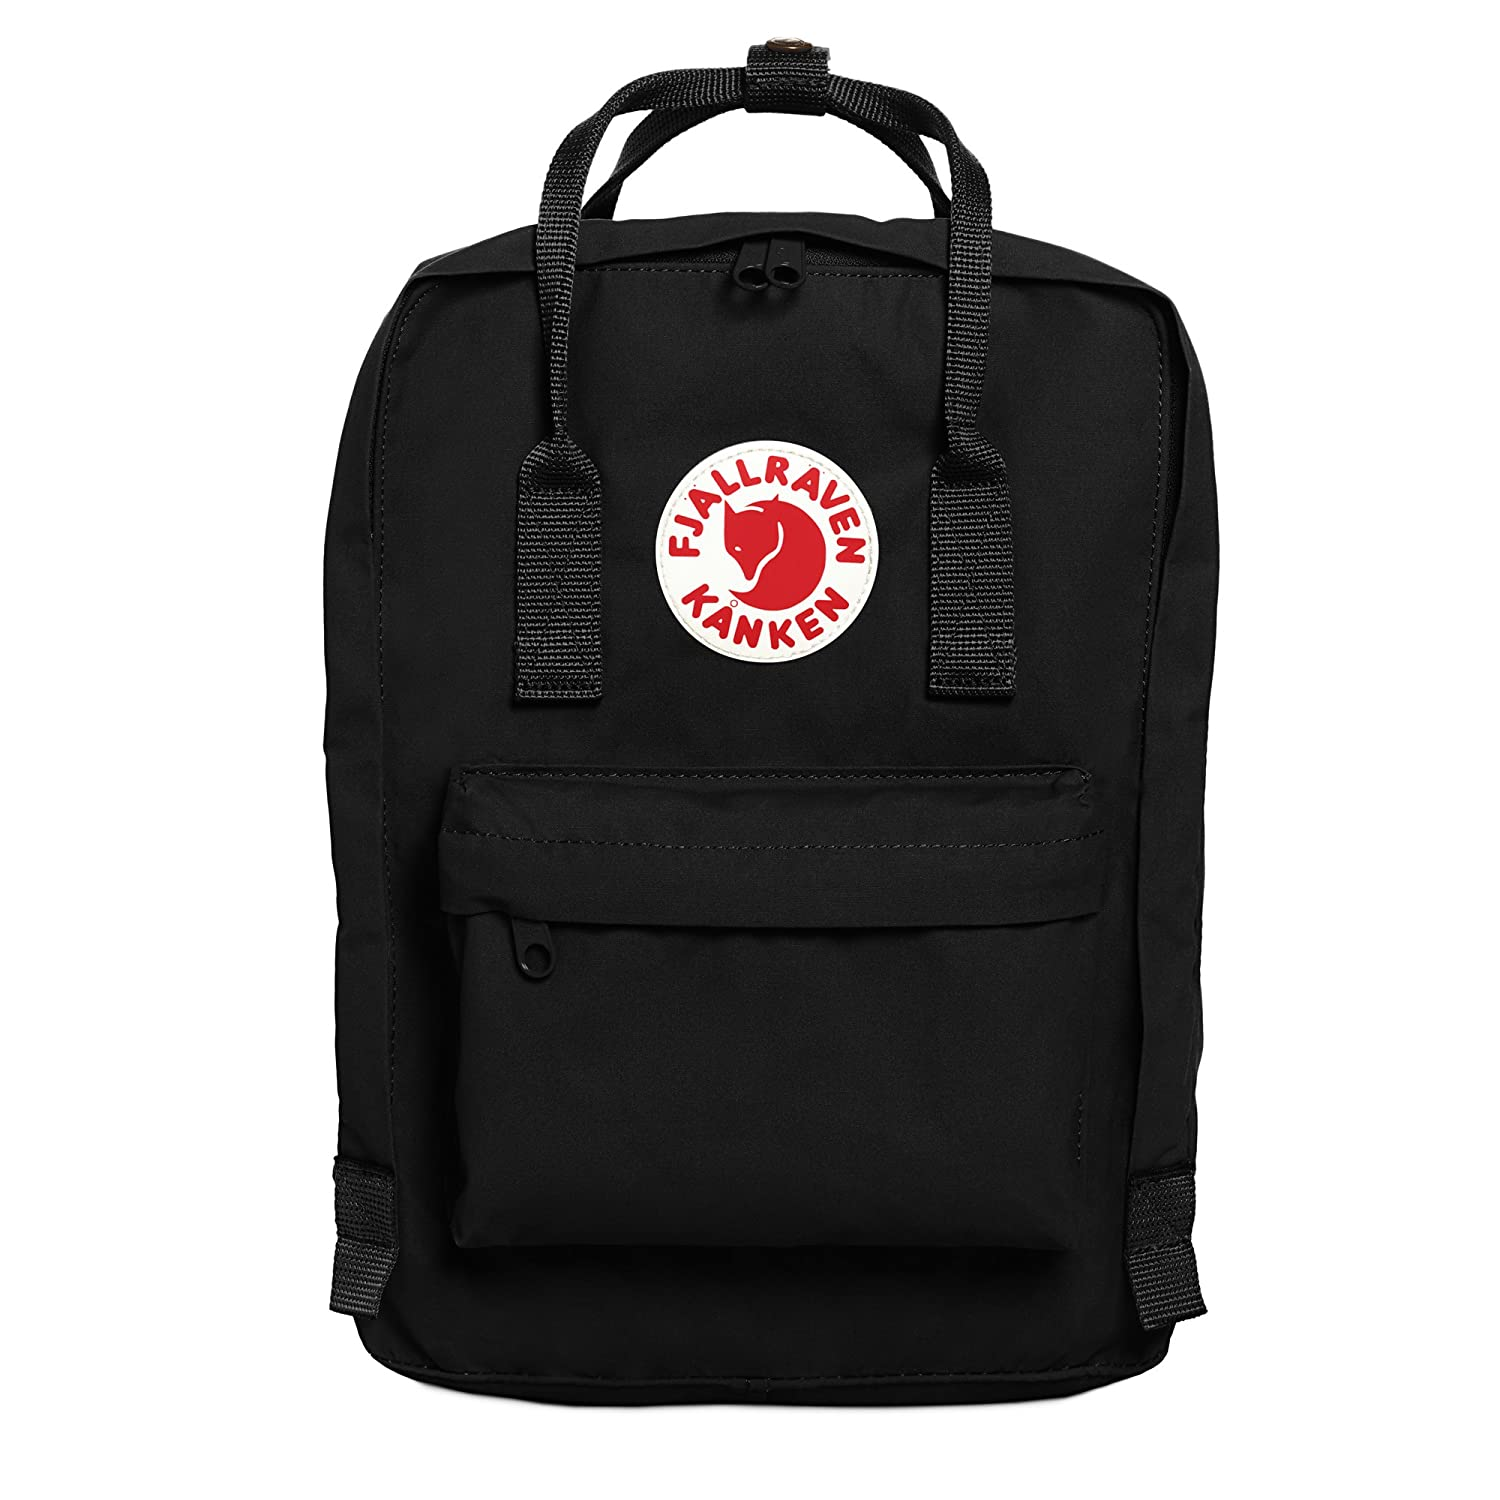 039c08b77f7b4 Fjallraven Kanken 13 Laptop Backpack One Size Black  Amazon.com.au  Fashion